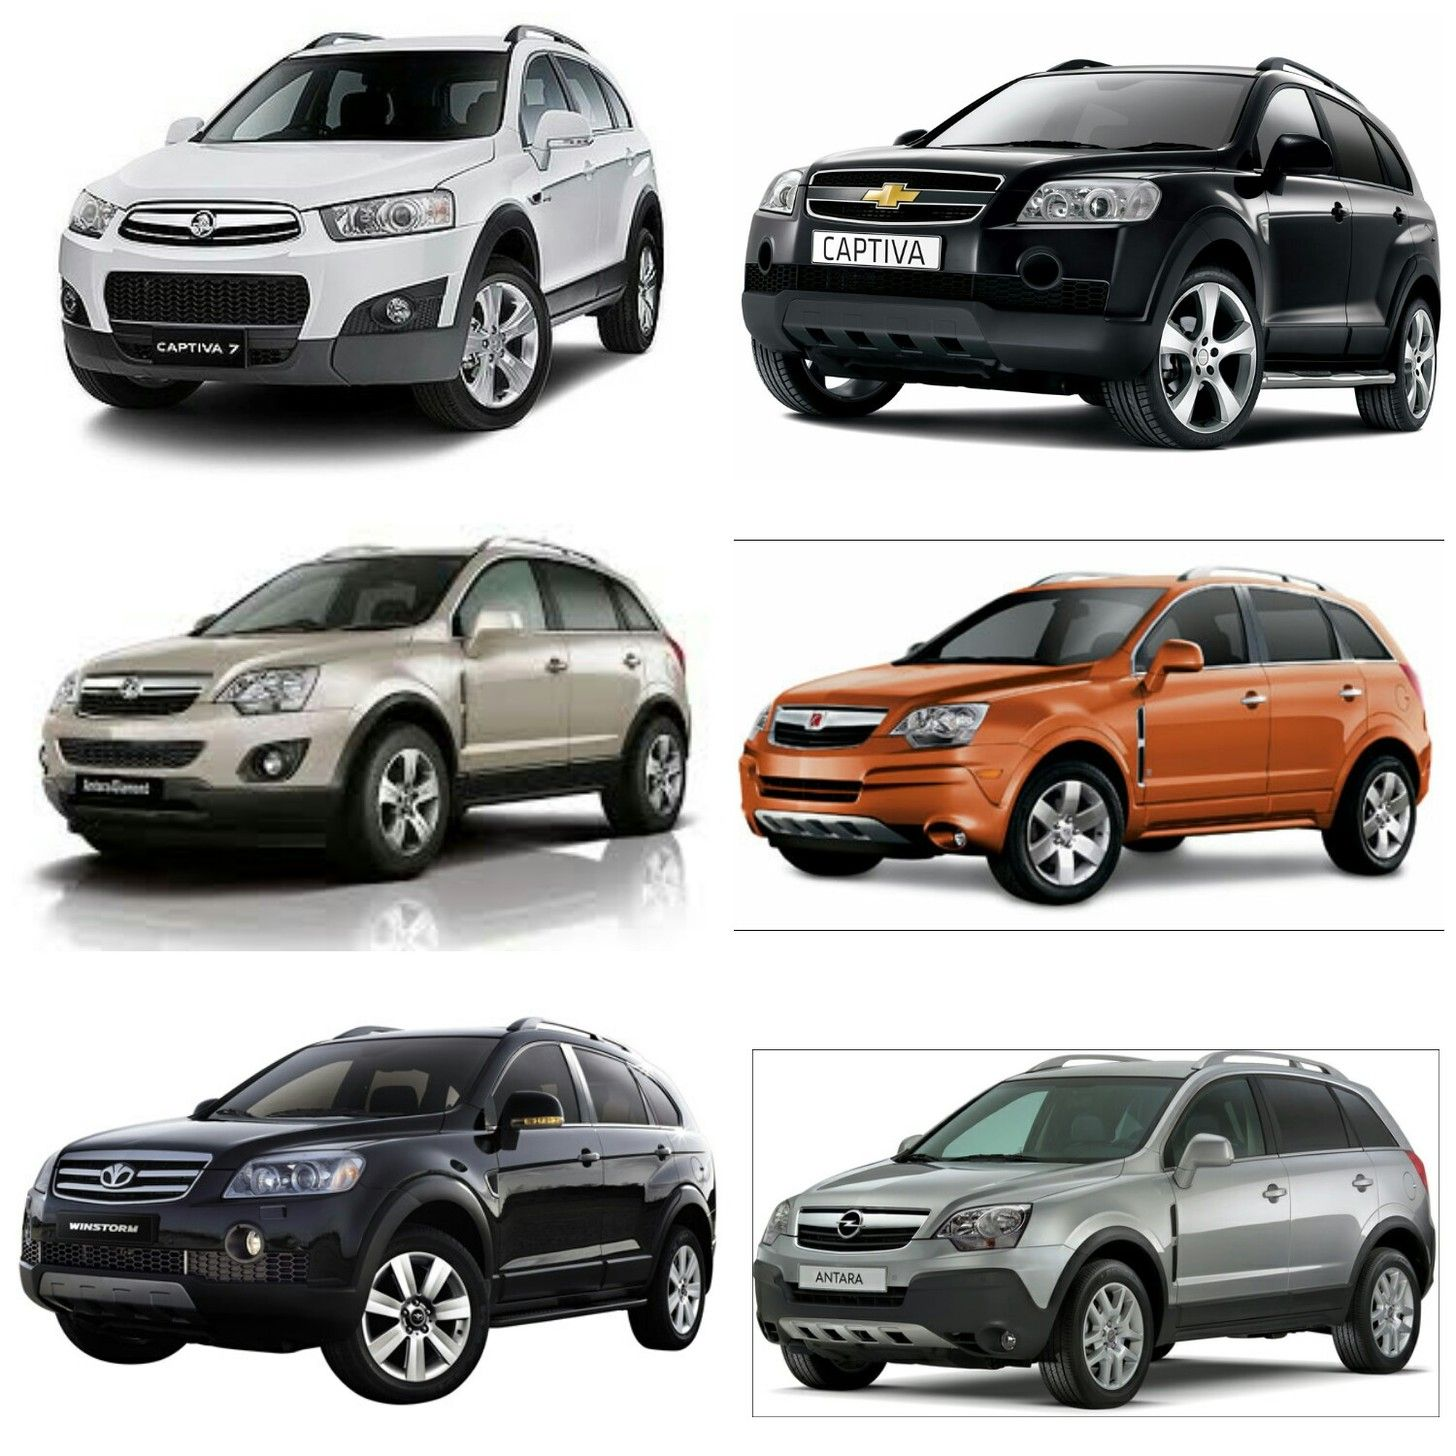 Holden captiva top left chevrolet captiva top right vauxhall antara